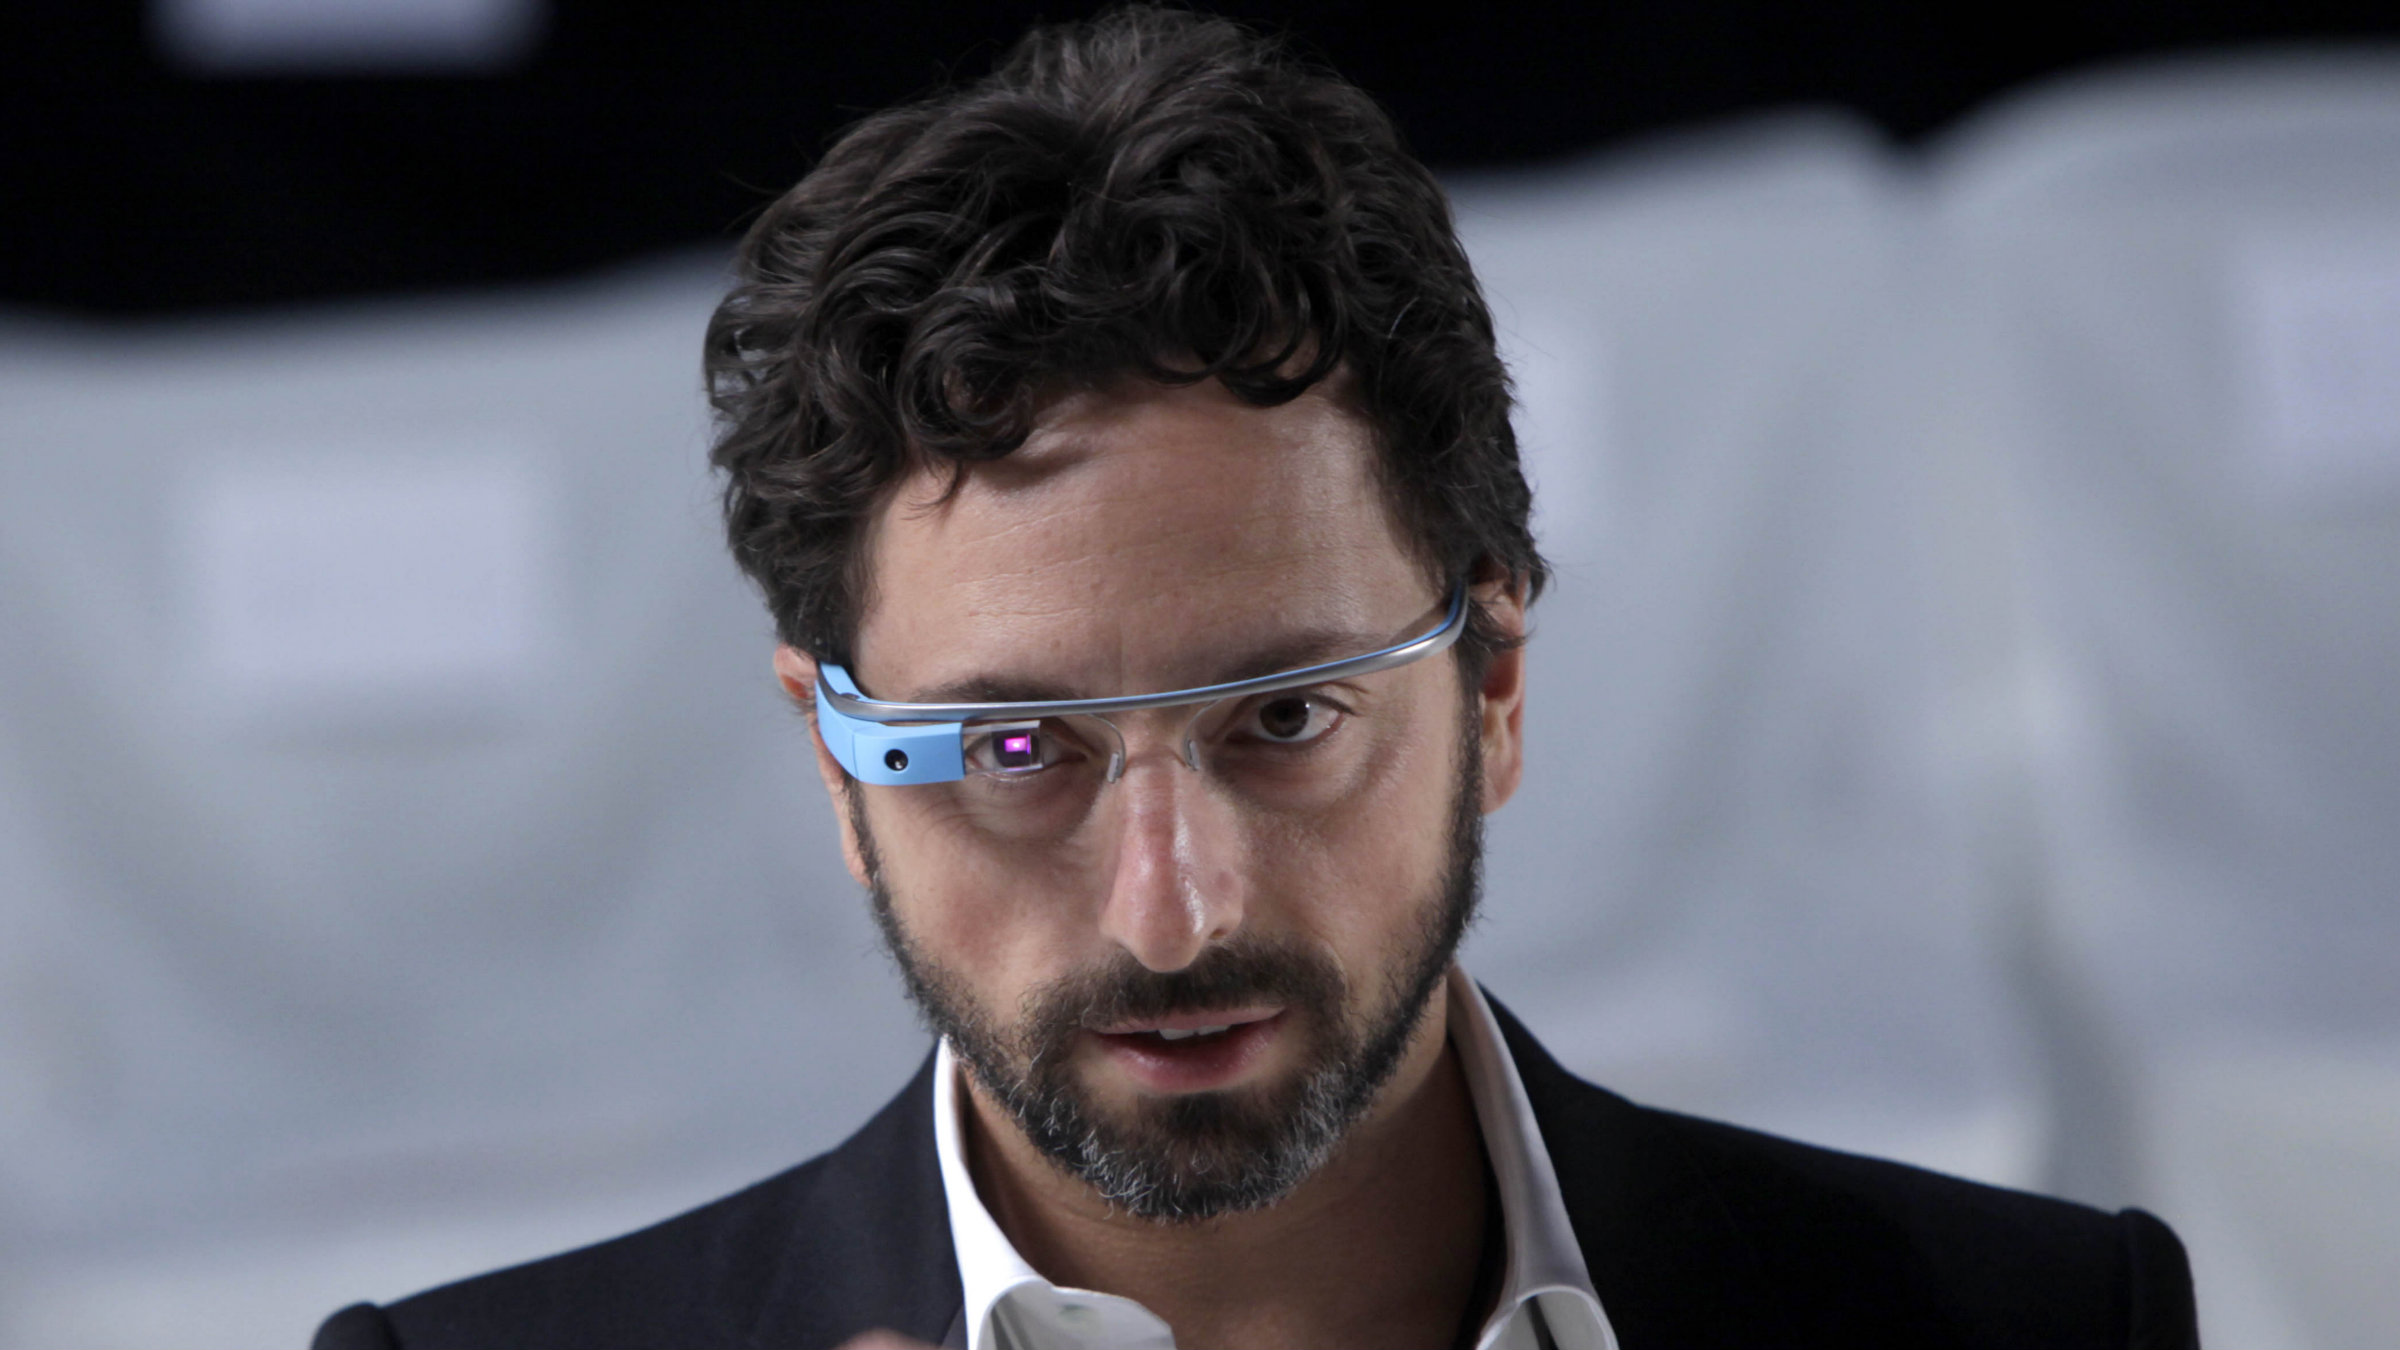 Sergey Brin is not watching you.